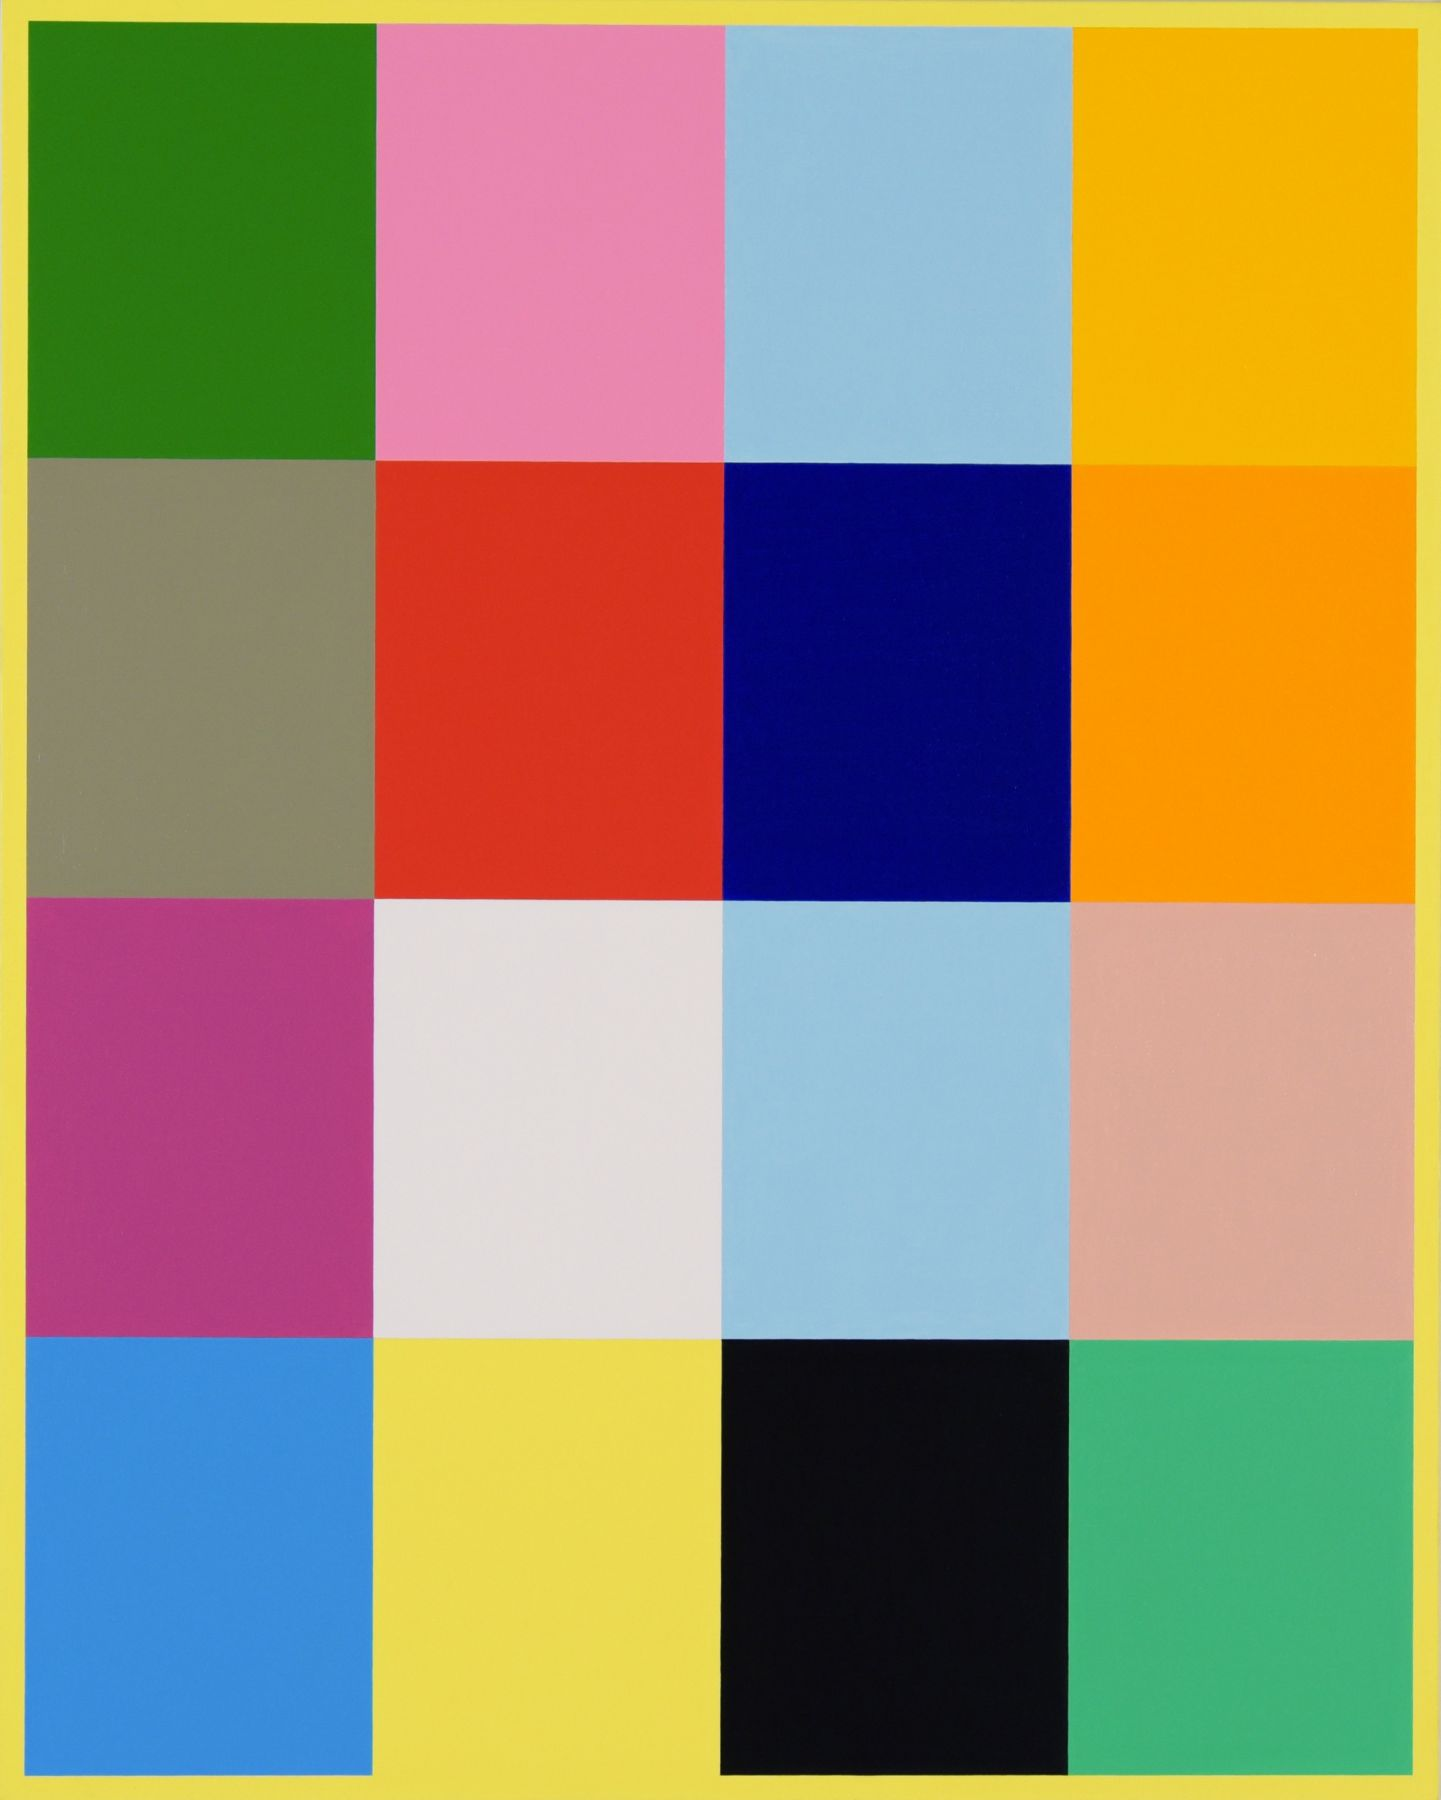 Cary Smith, Color Blocks #1 (with yellow border), 2017